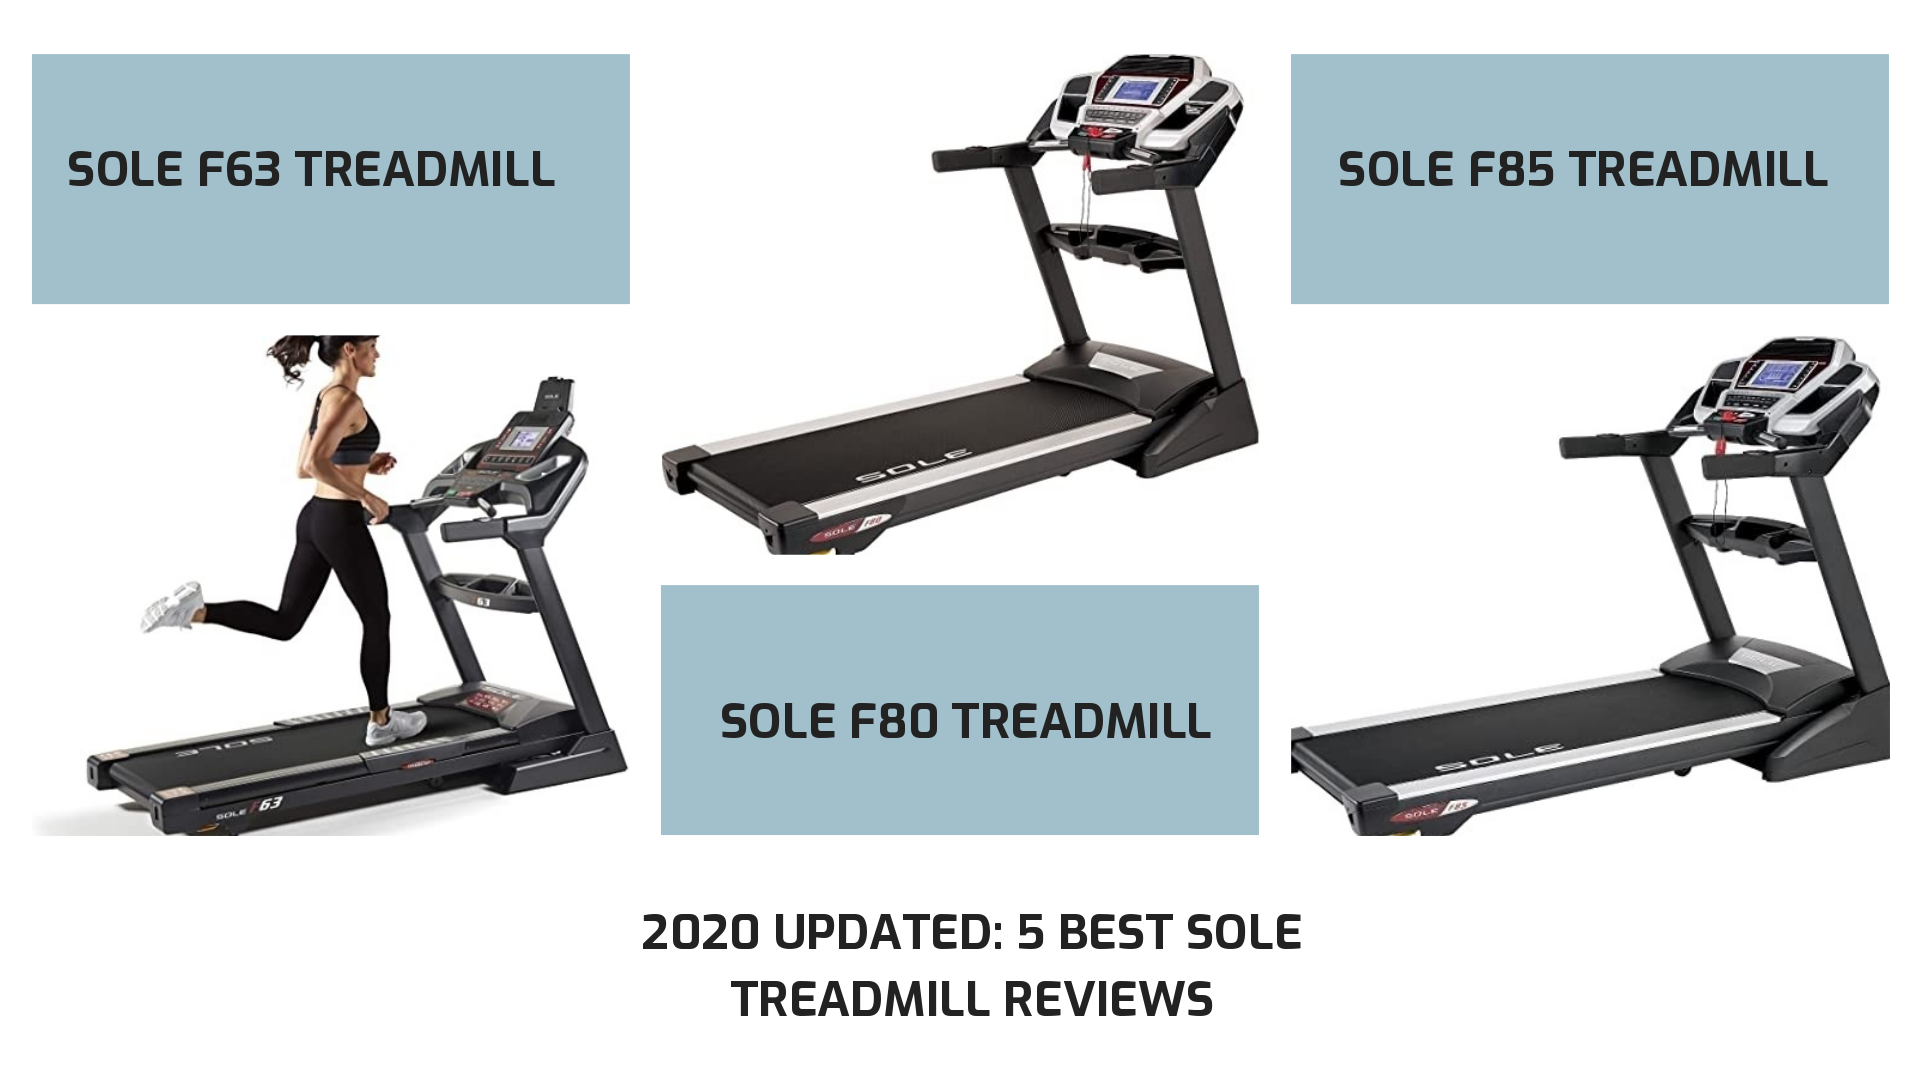 2020 Updated: 5 Best Sole Treadmill Reviews